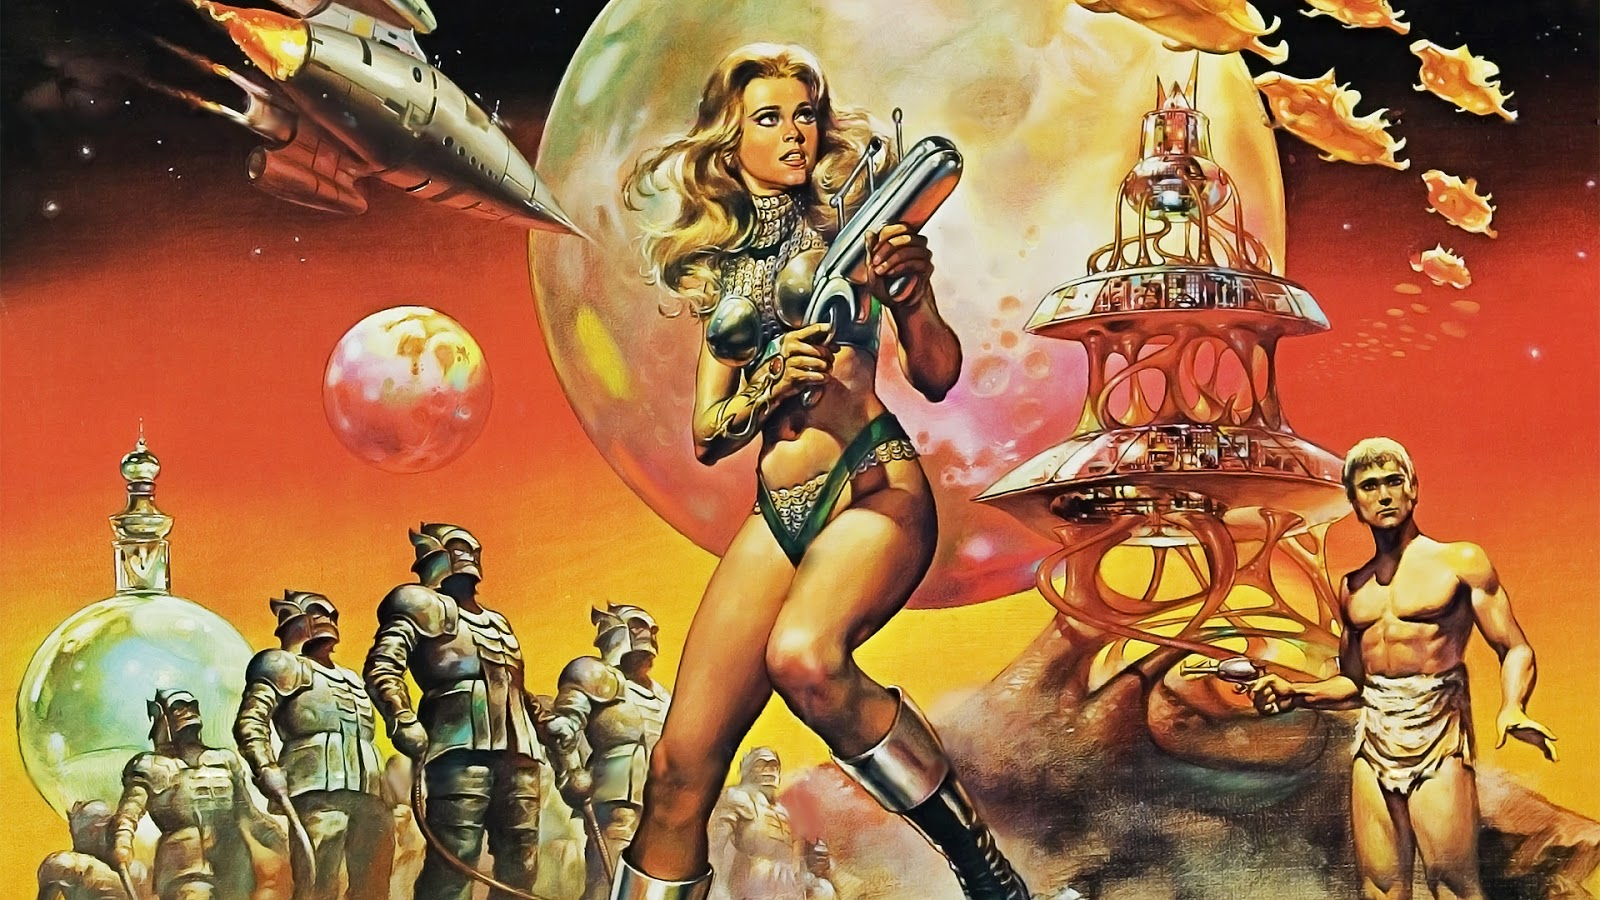 Lists: Ten Righteous 1960's Sci-Fi Movies That You Should Watch At Least Once